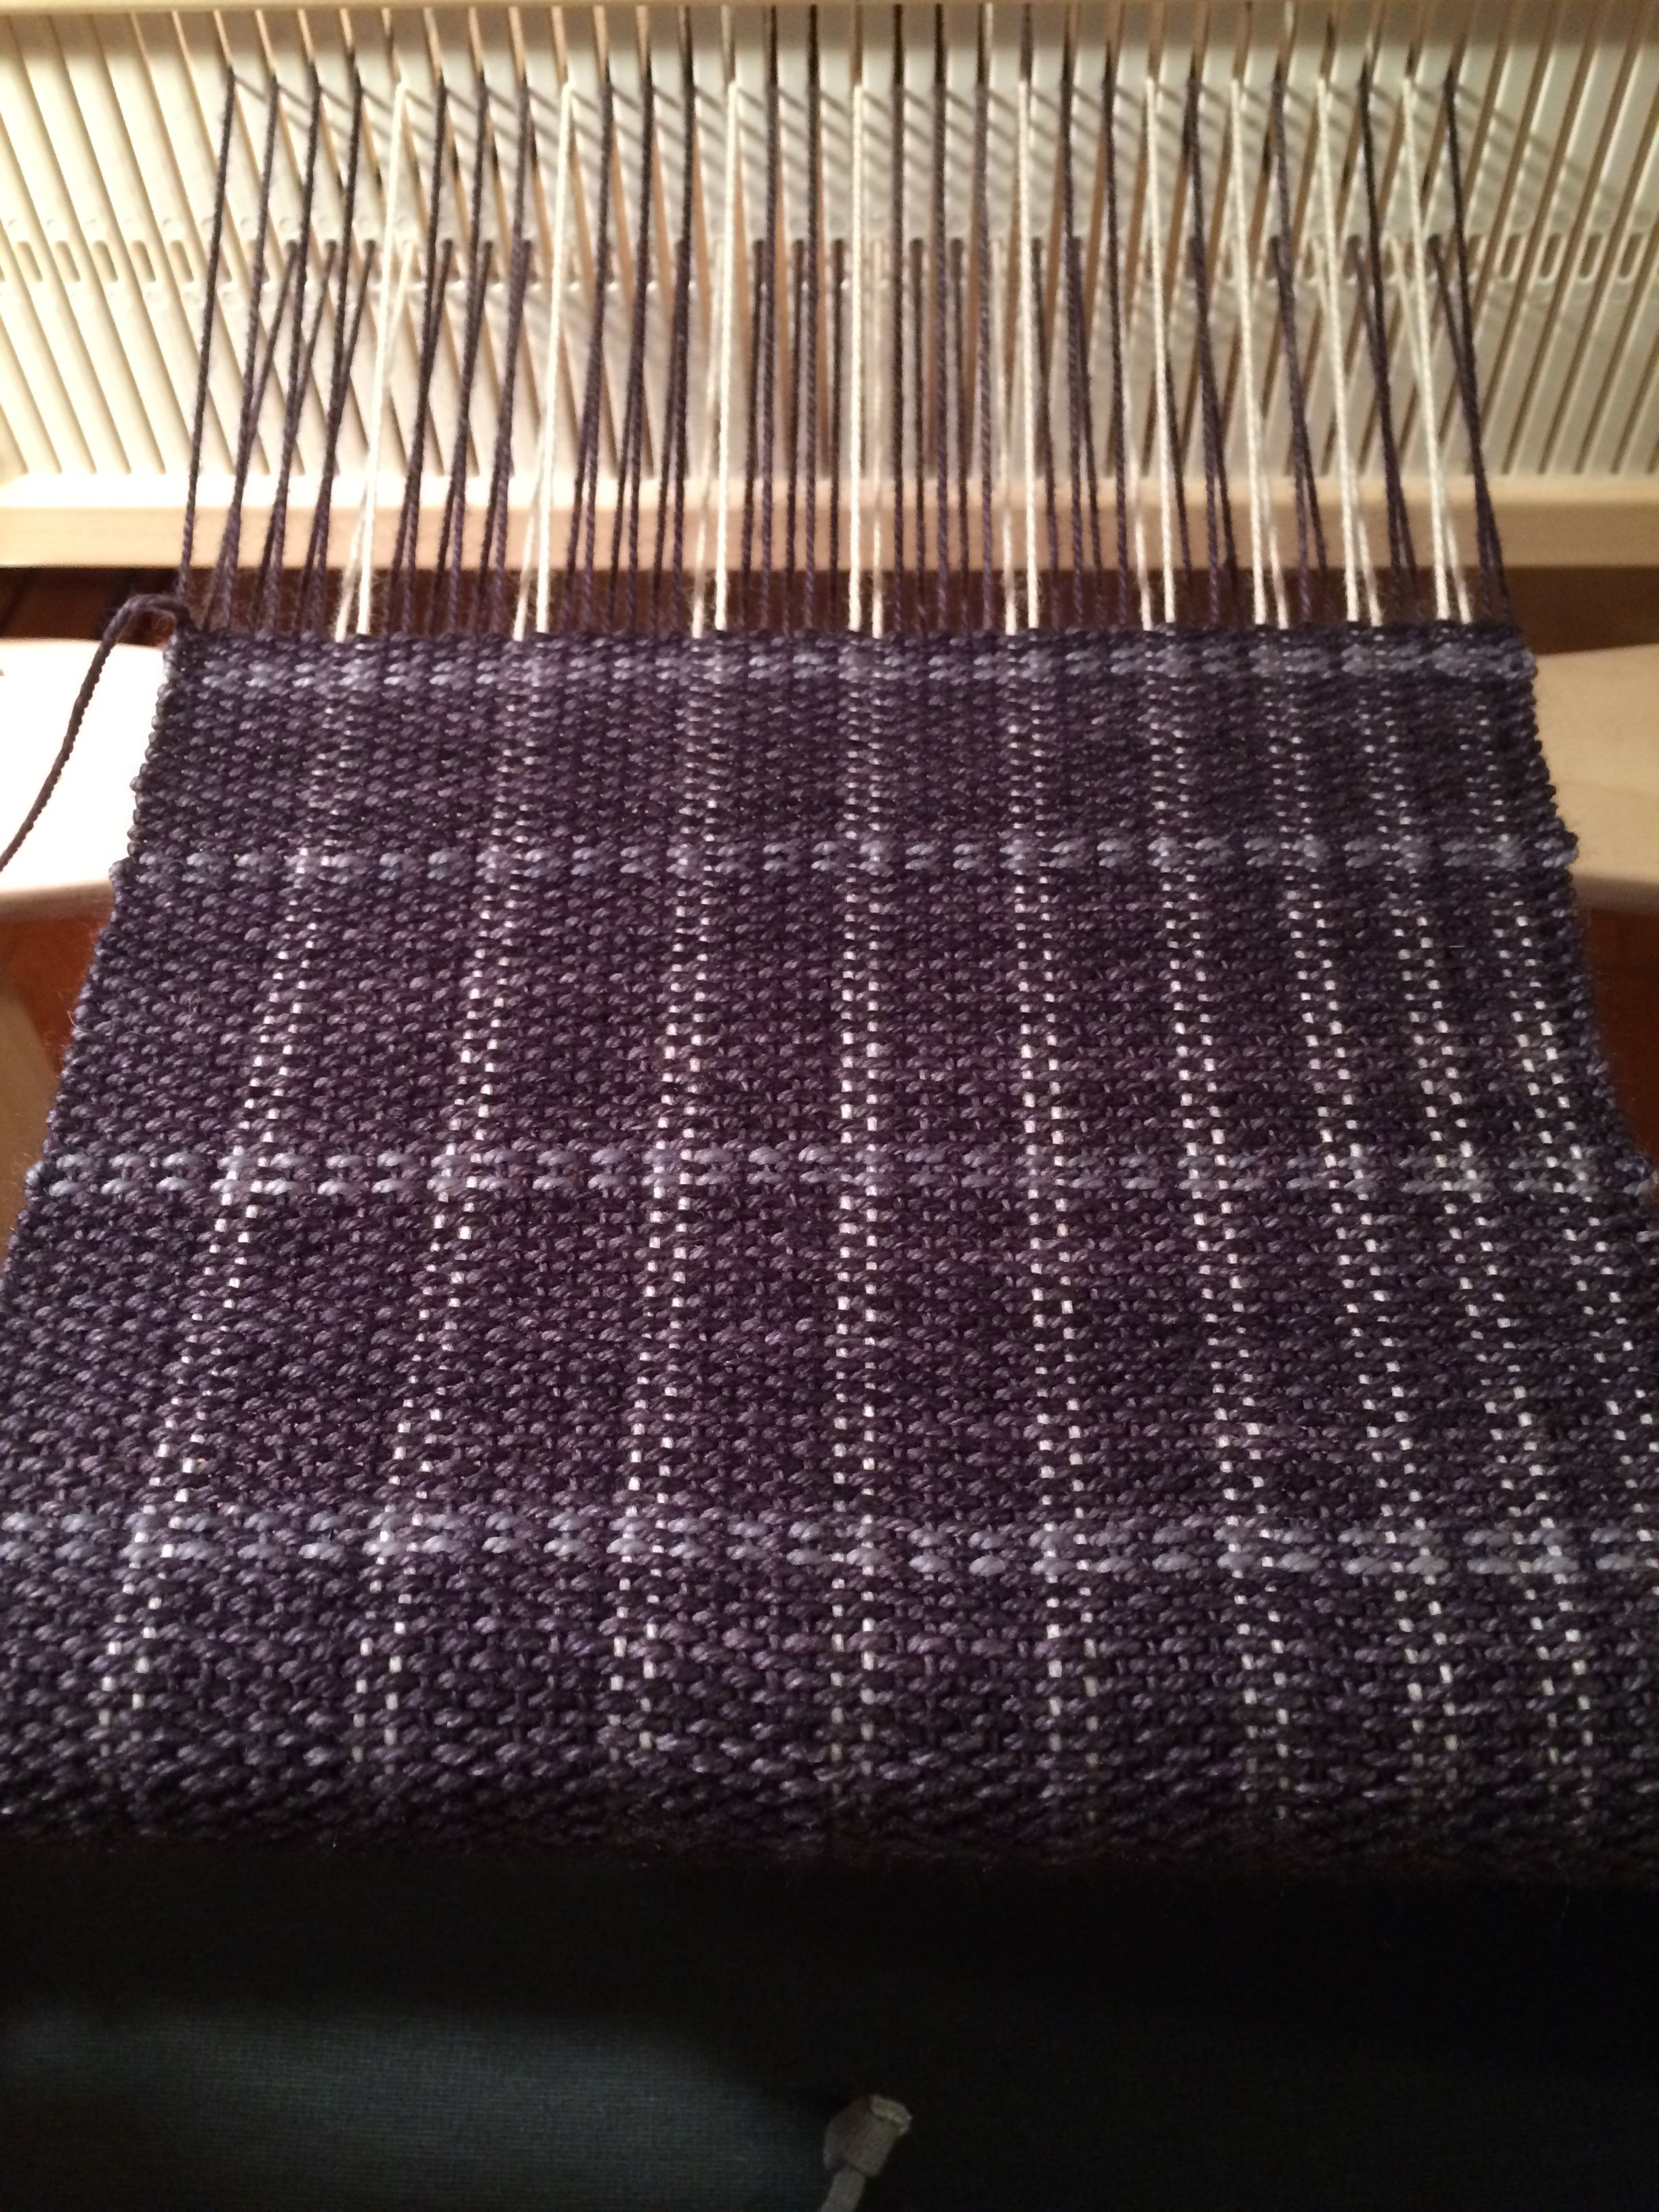 Grays On Cricket Loom Rigid Heddle Squishy And Yummy Yarns Cricket Loom Loom Weaving Rigid Heddle Weaving Patterns